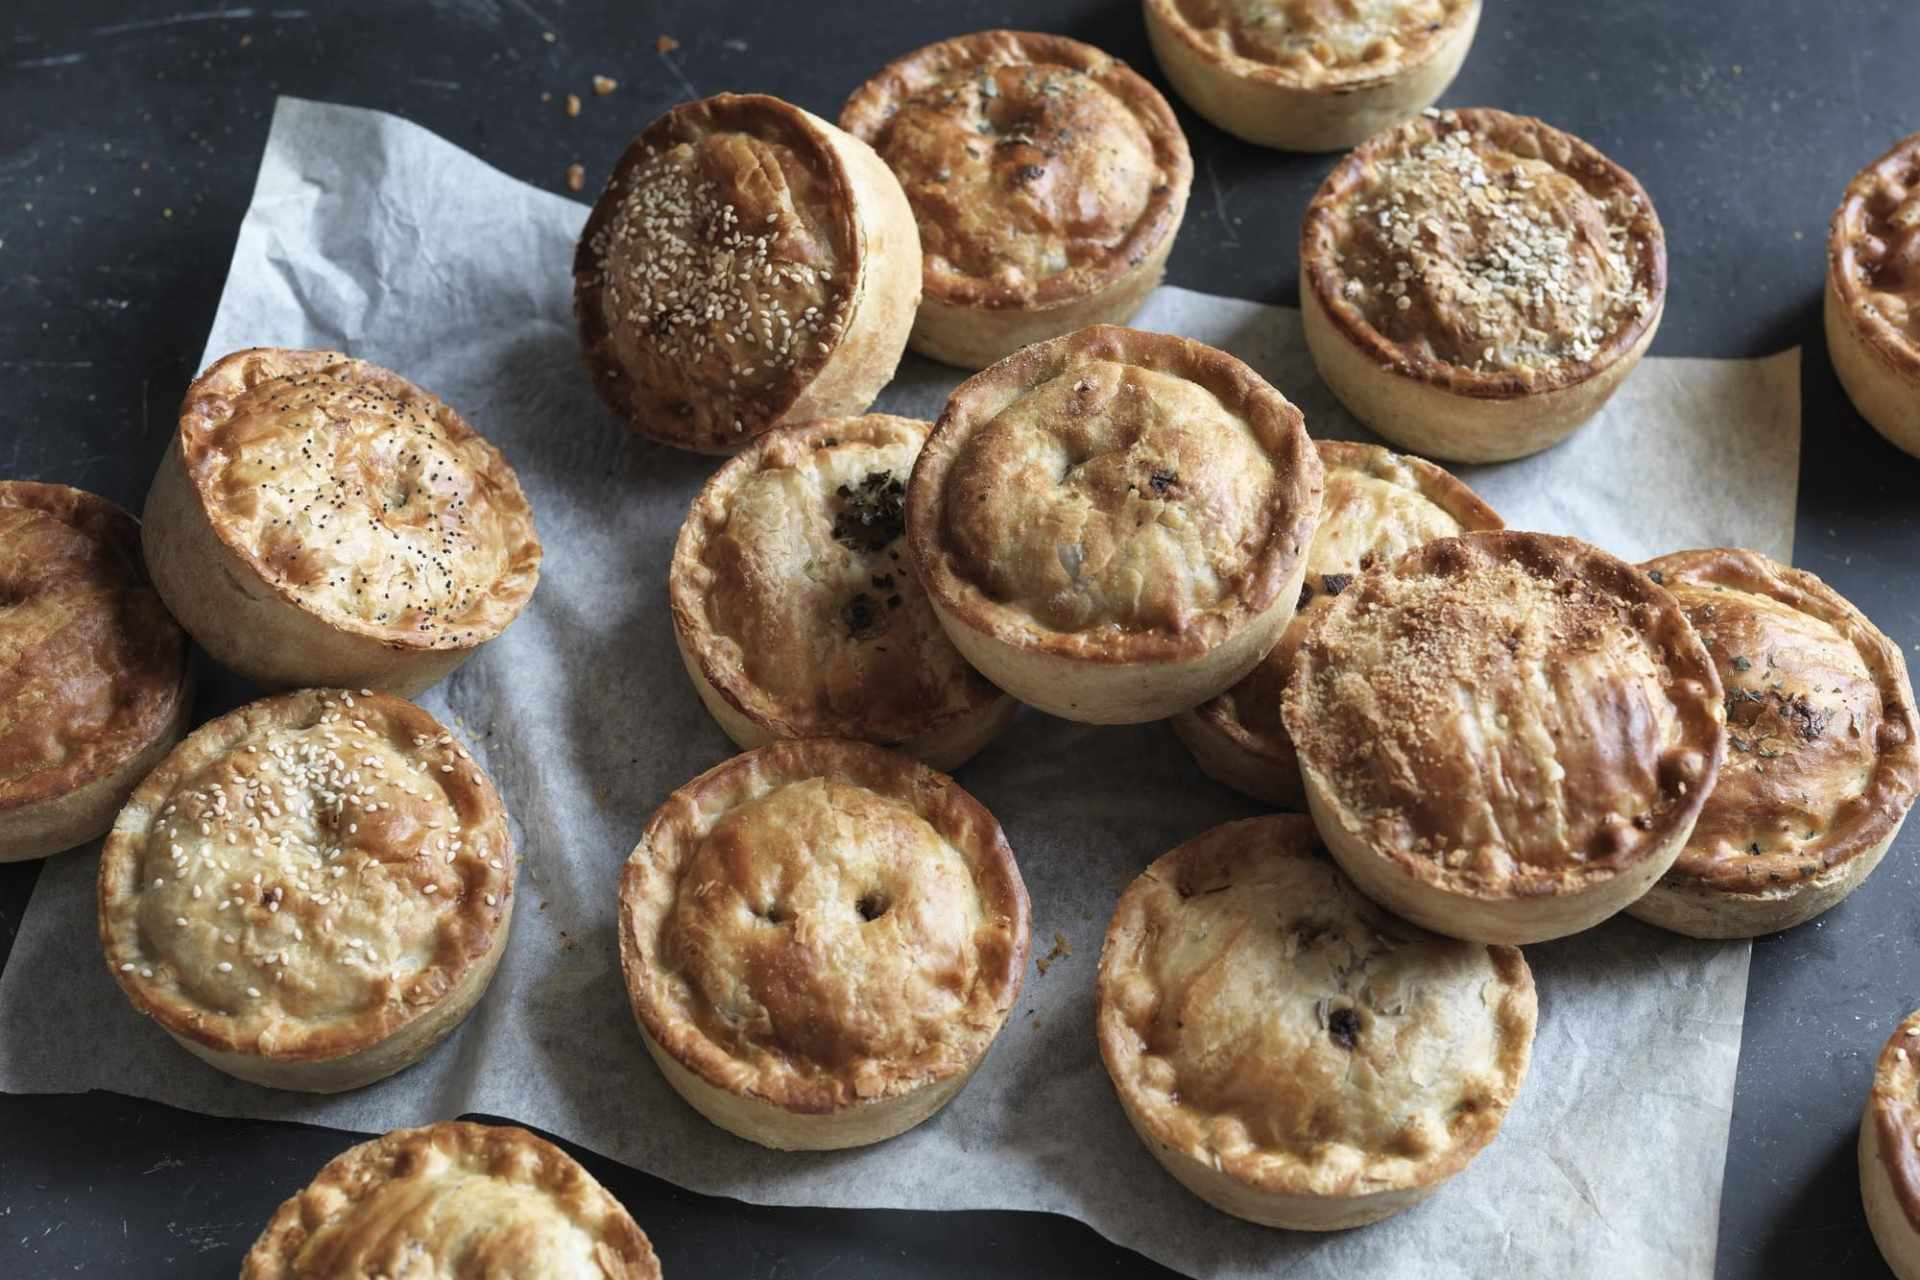 small-pieminister-pies-on-table